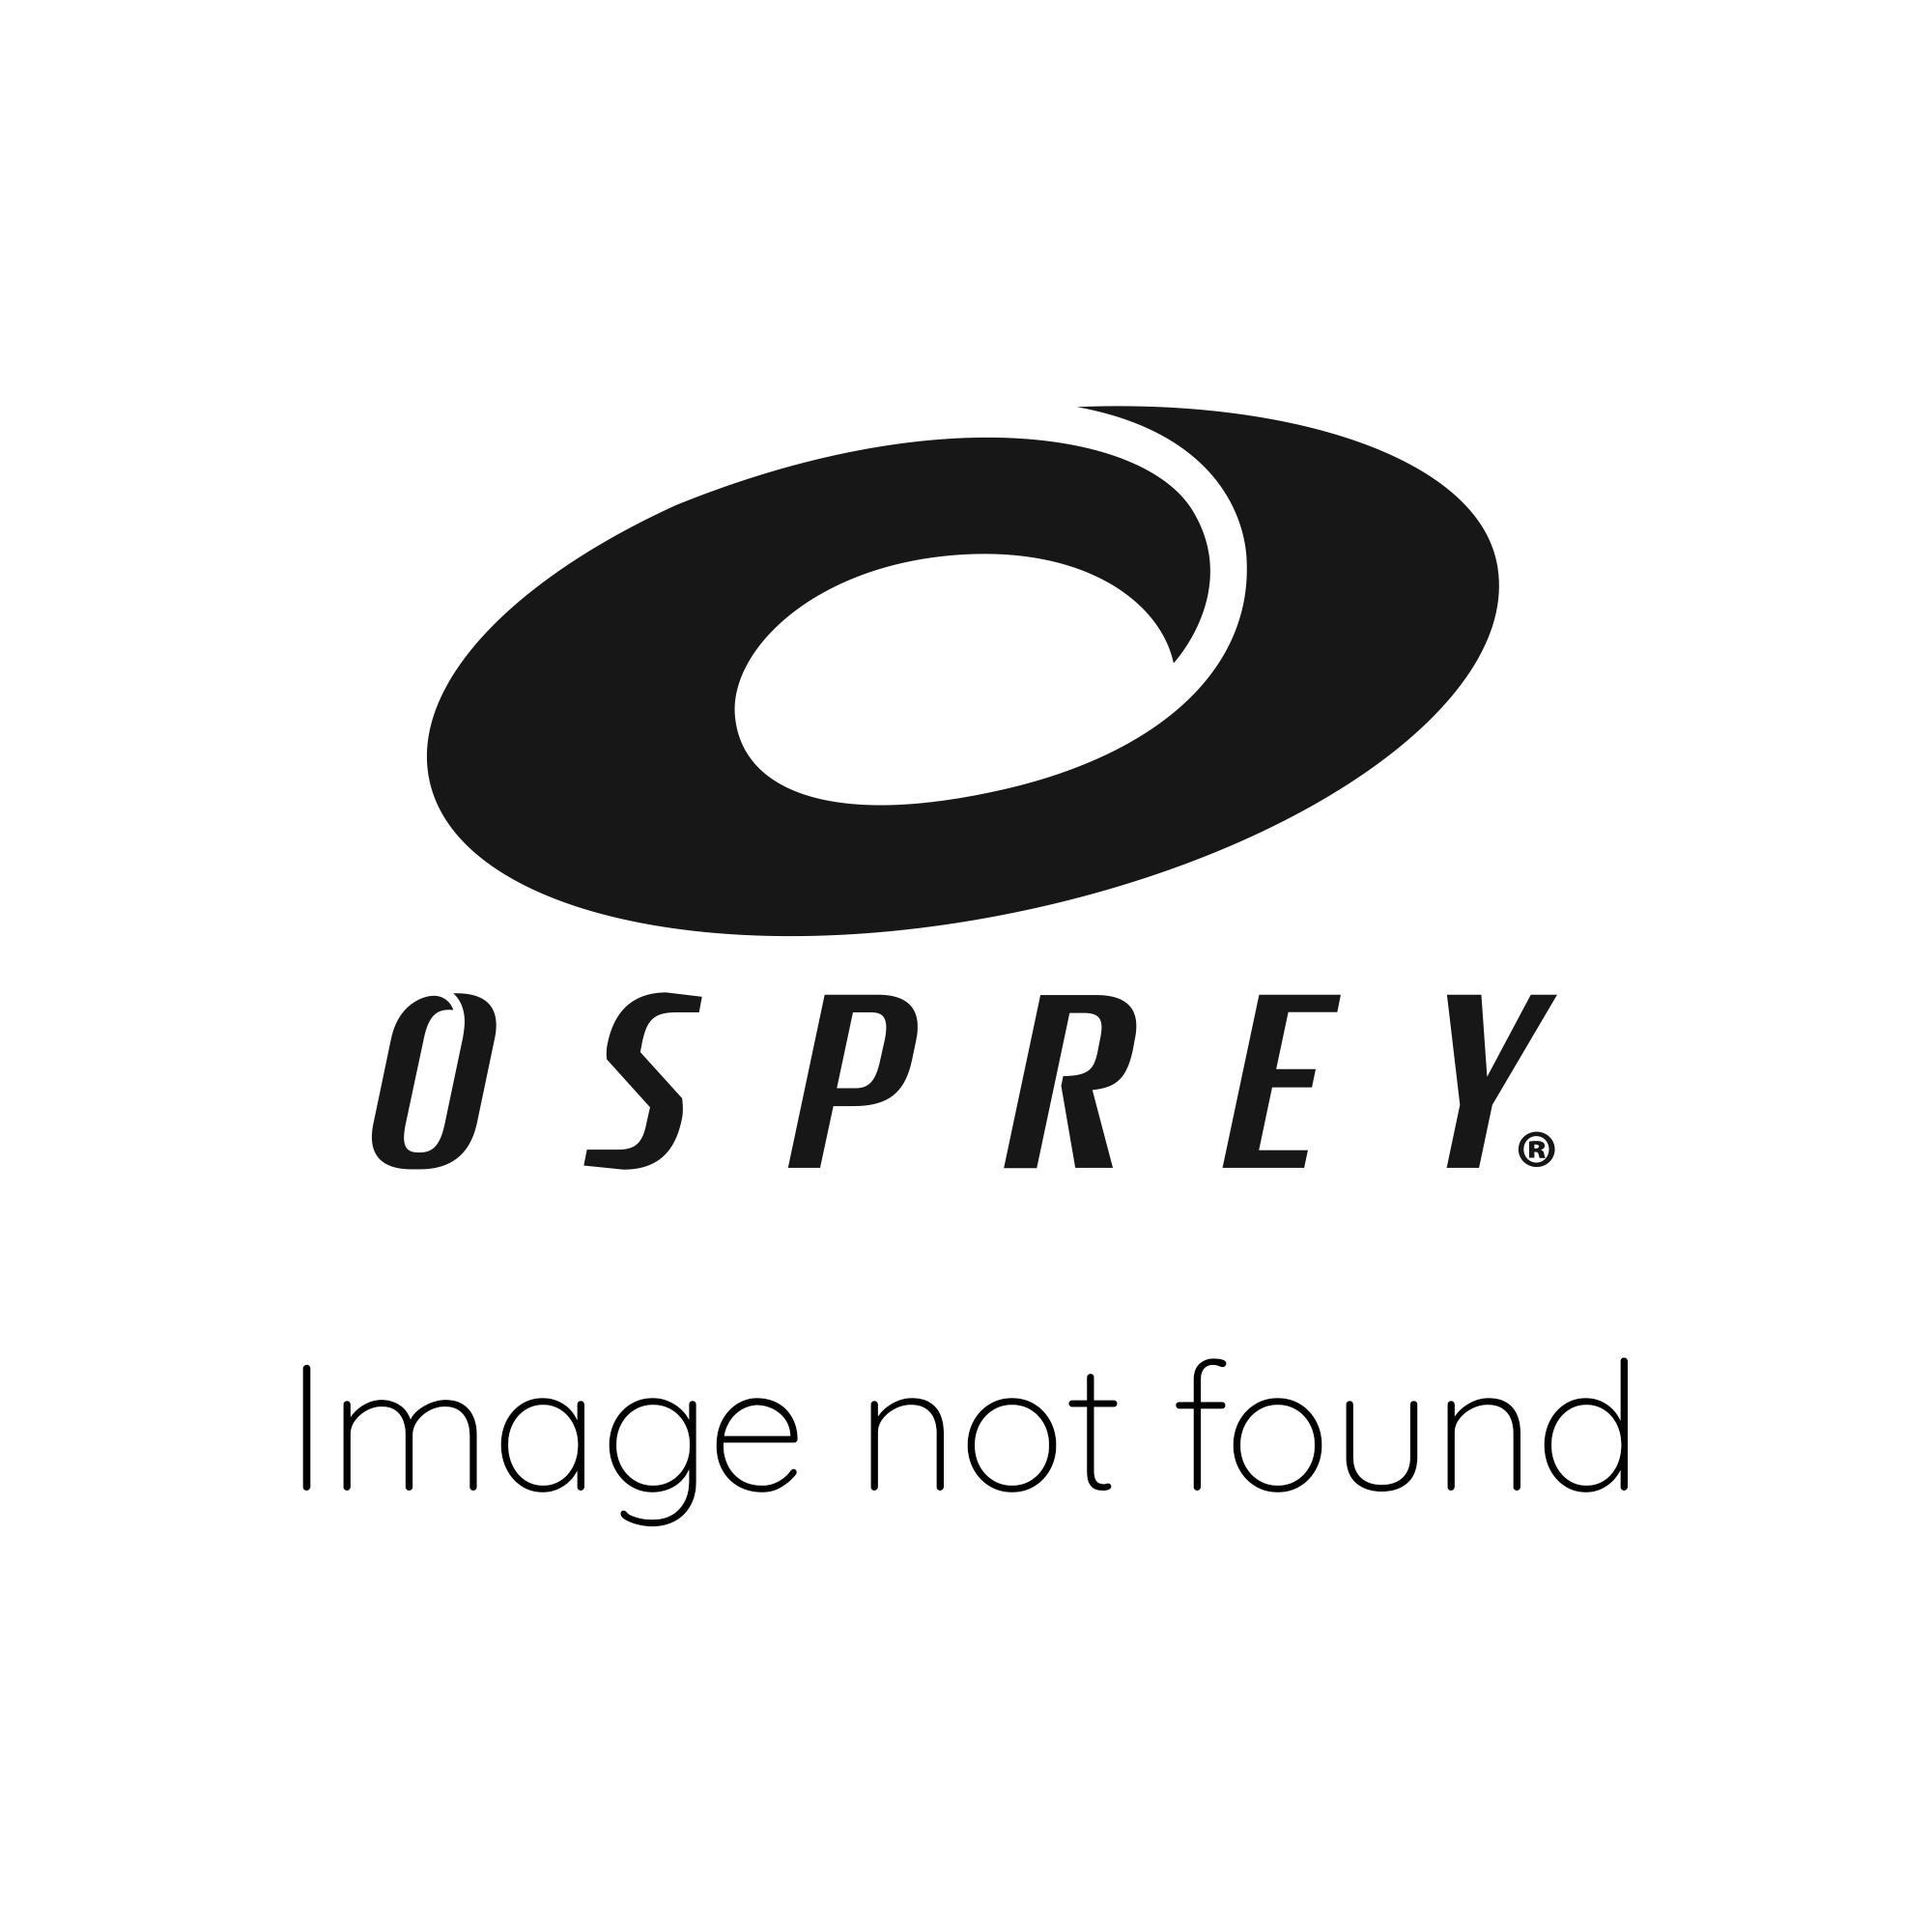 dirt scooter by osprey with off road all terrain tyres. Black Bedroom Furniture Sets. Home Design Ideas